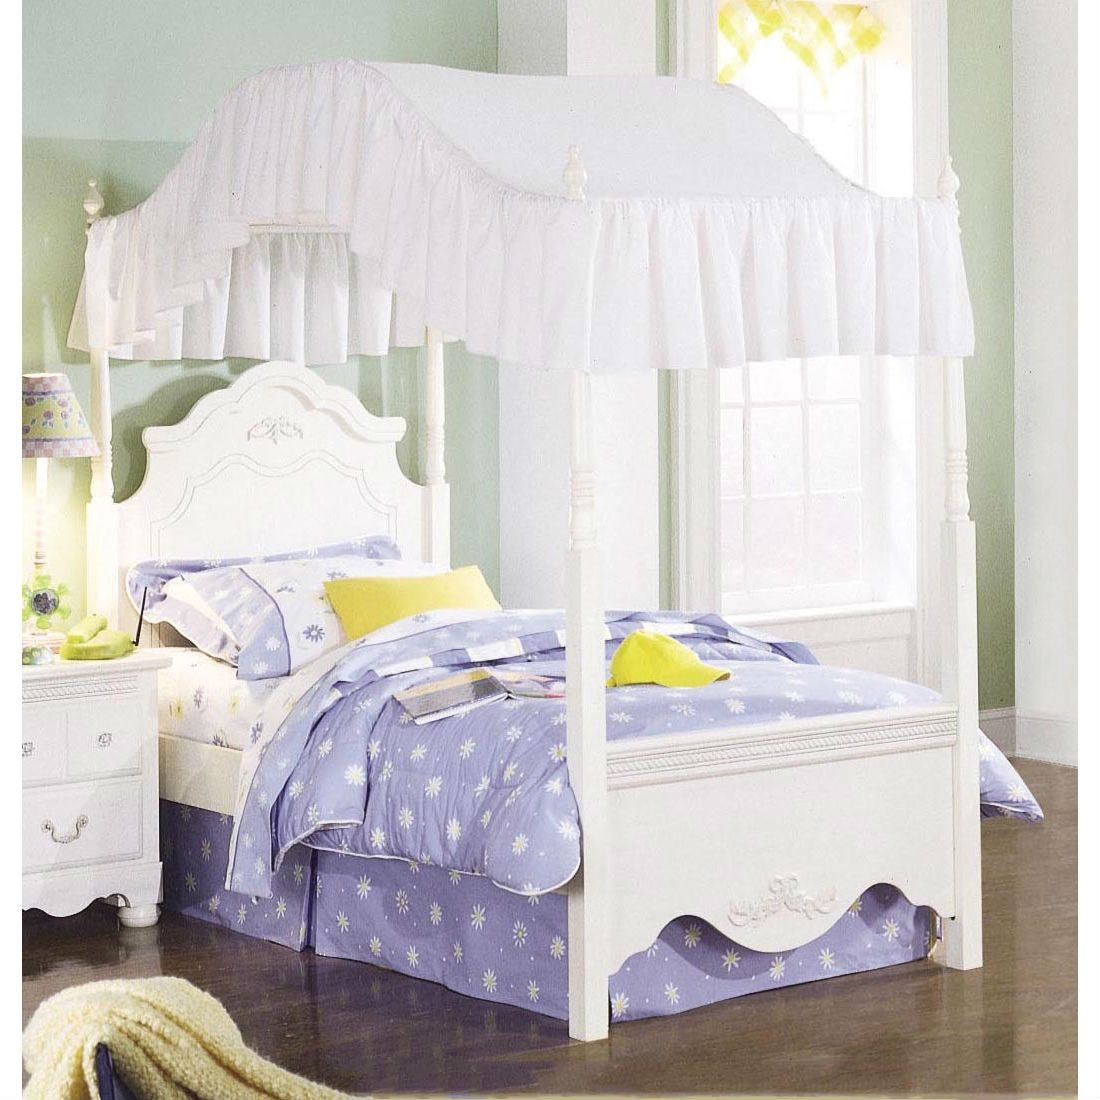 Twin Size Victorian Style White Wood Canopy Bed Fabric Not